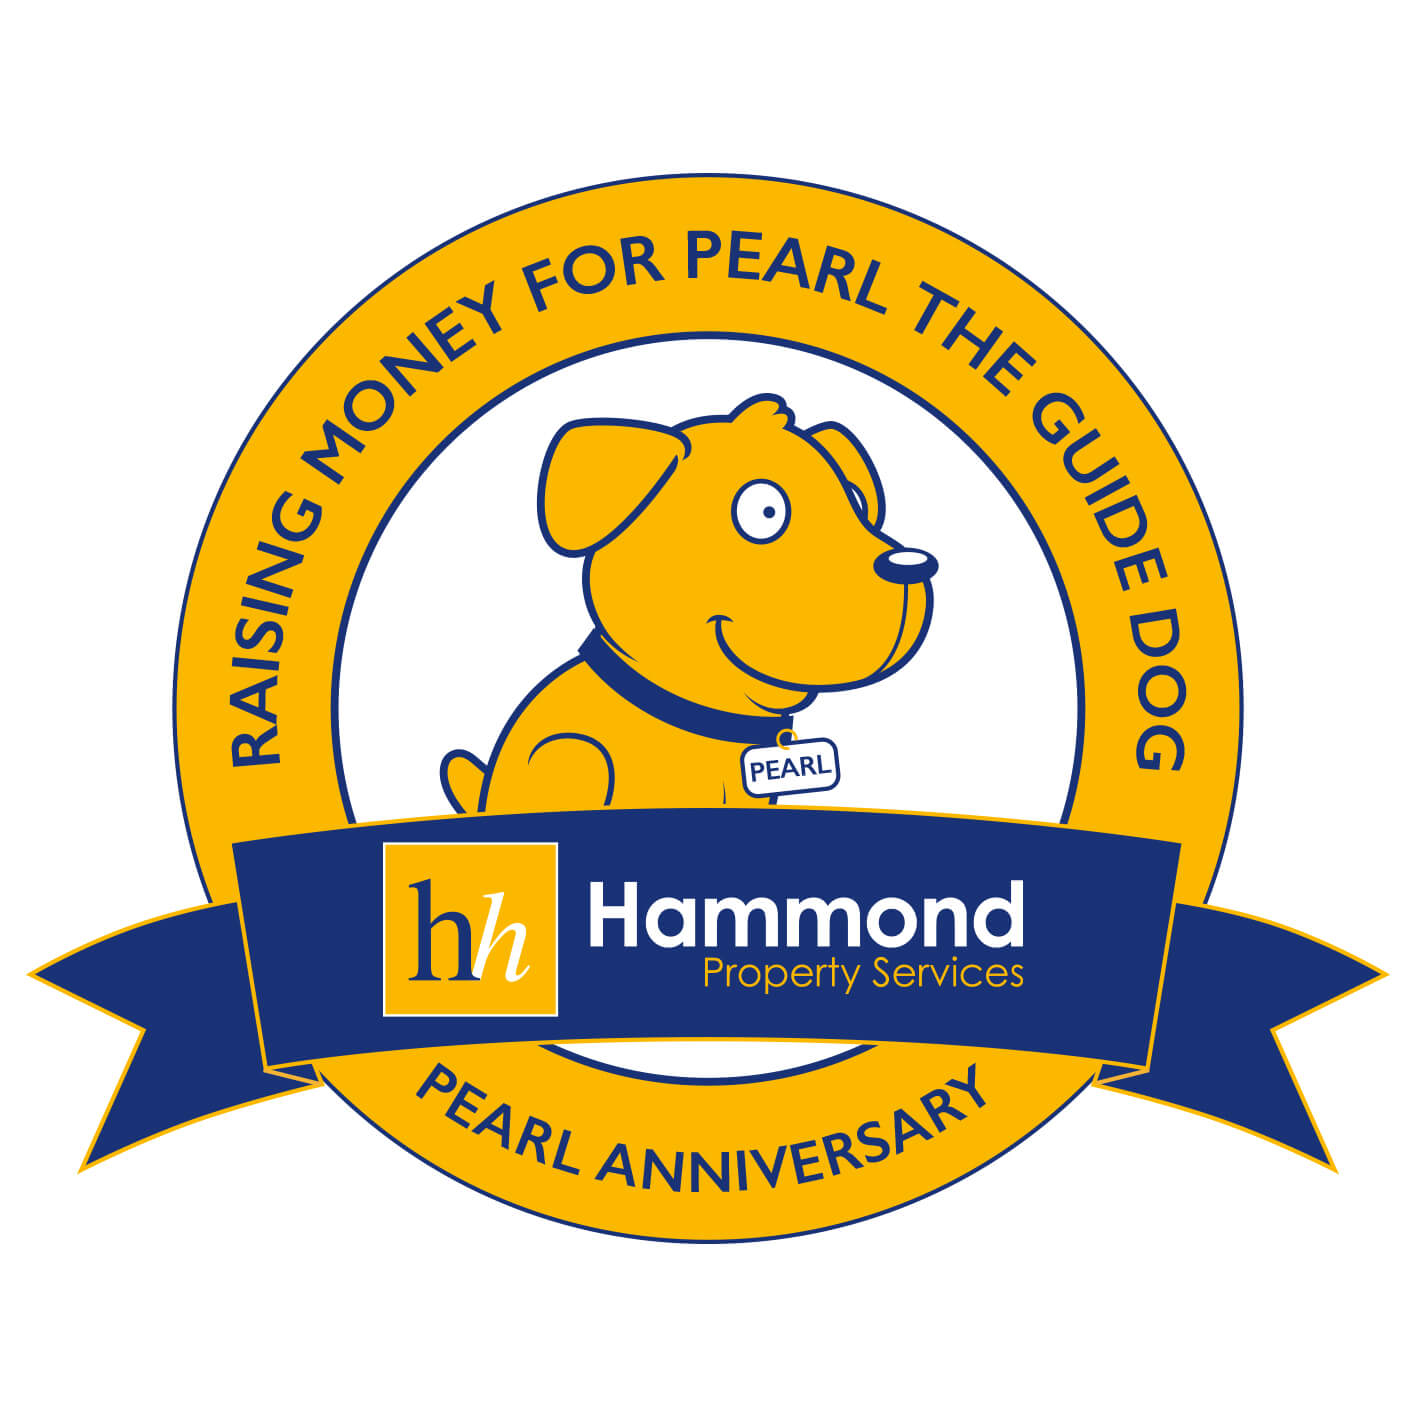 Hammonds Property Services 1